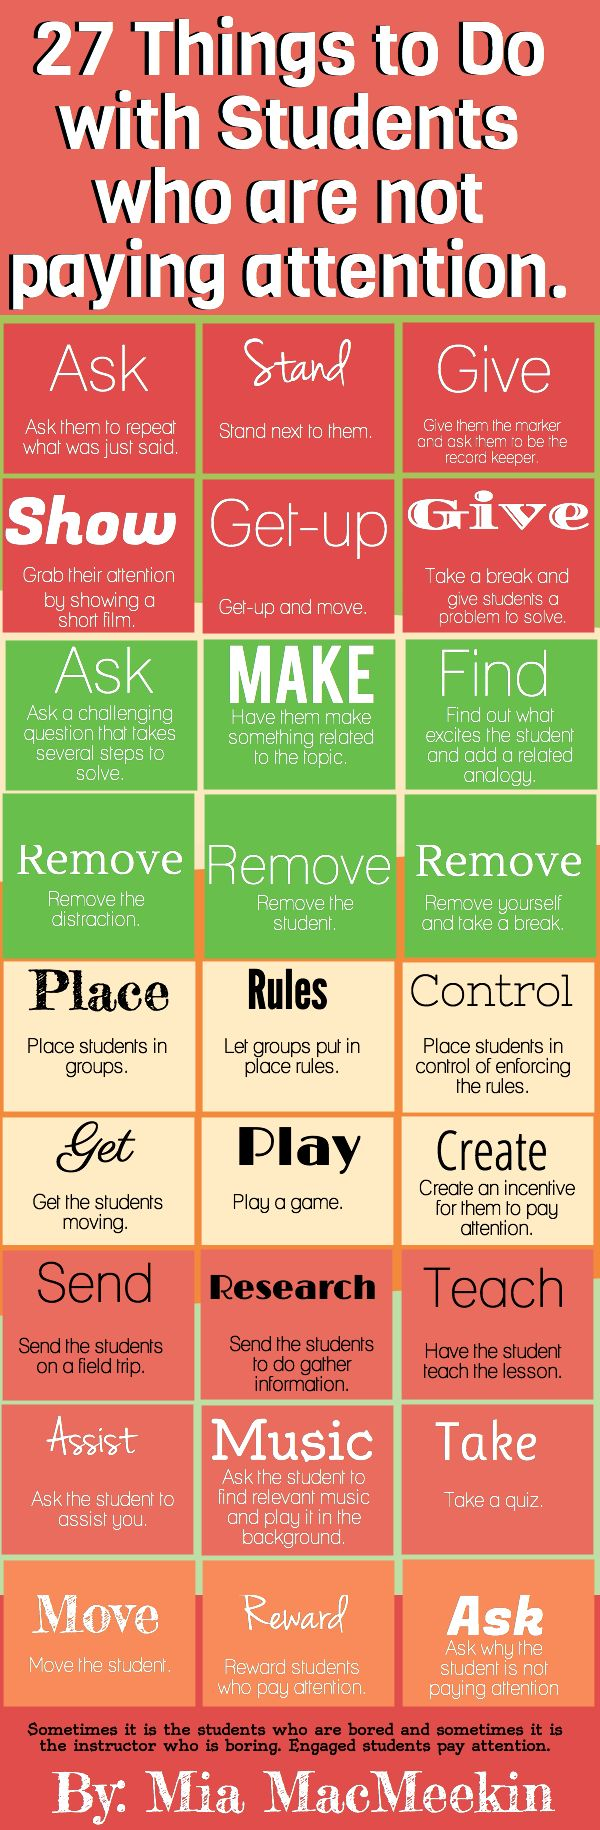 It often happens in classrooms and academies that students get bored and even sometimes teacher felt that he is boring. To keep better class-environment  here we have a handy infographic which will illustrate 27 best things to do with boring students, who are not paying attention.  http://www.digitalinformationworld.com/2013/04/27-ways-to-grab-attention-of-boring.html #education #teachingtips